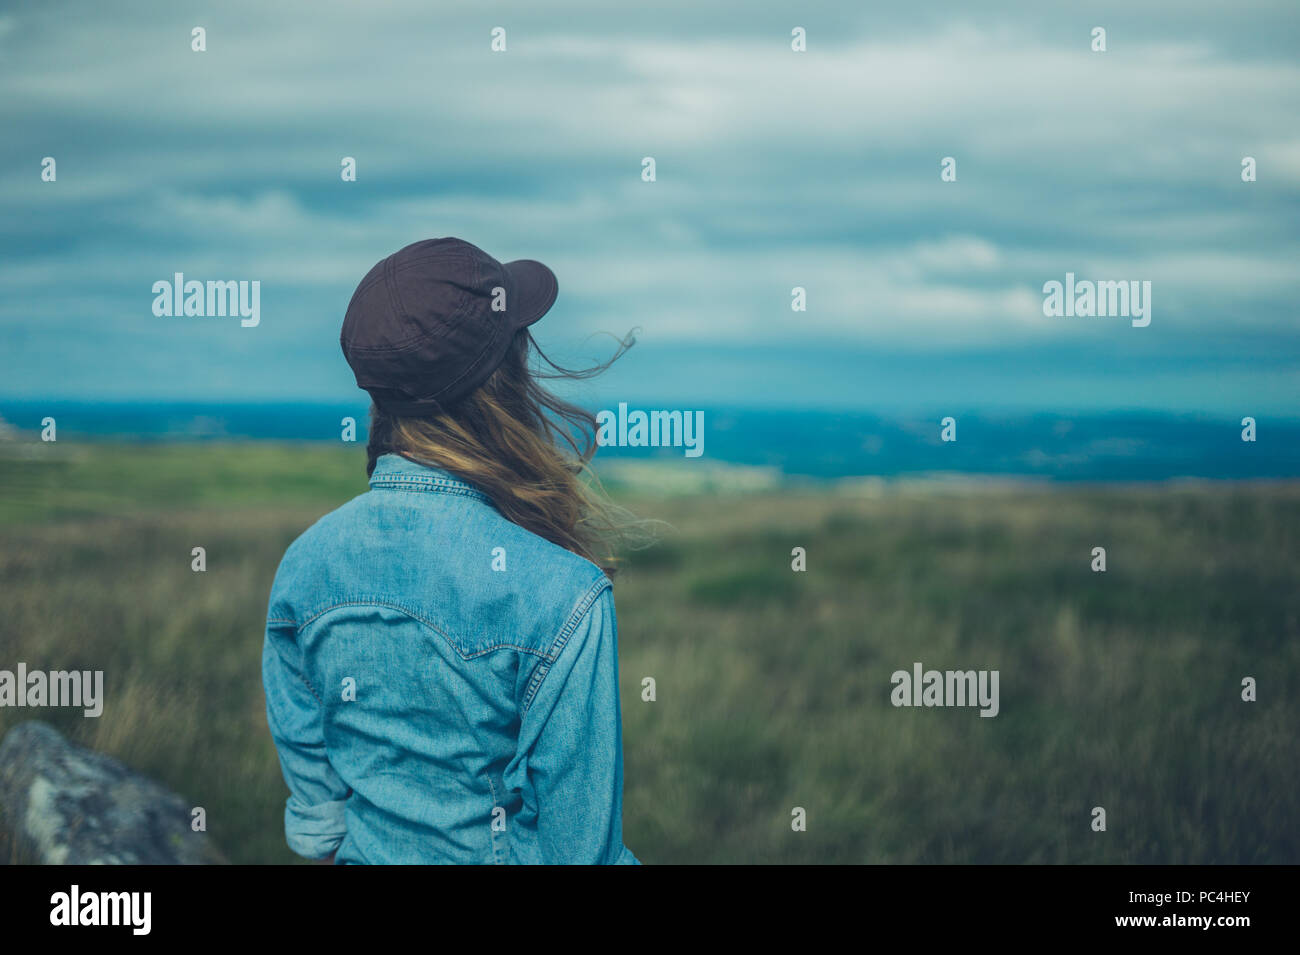 A young woman wearing a baseball cap is standing on a hilltop - Stock Image